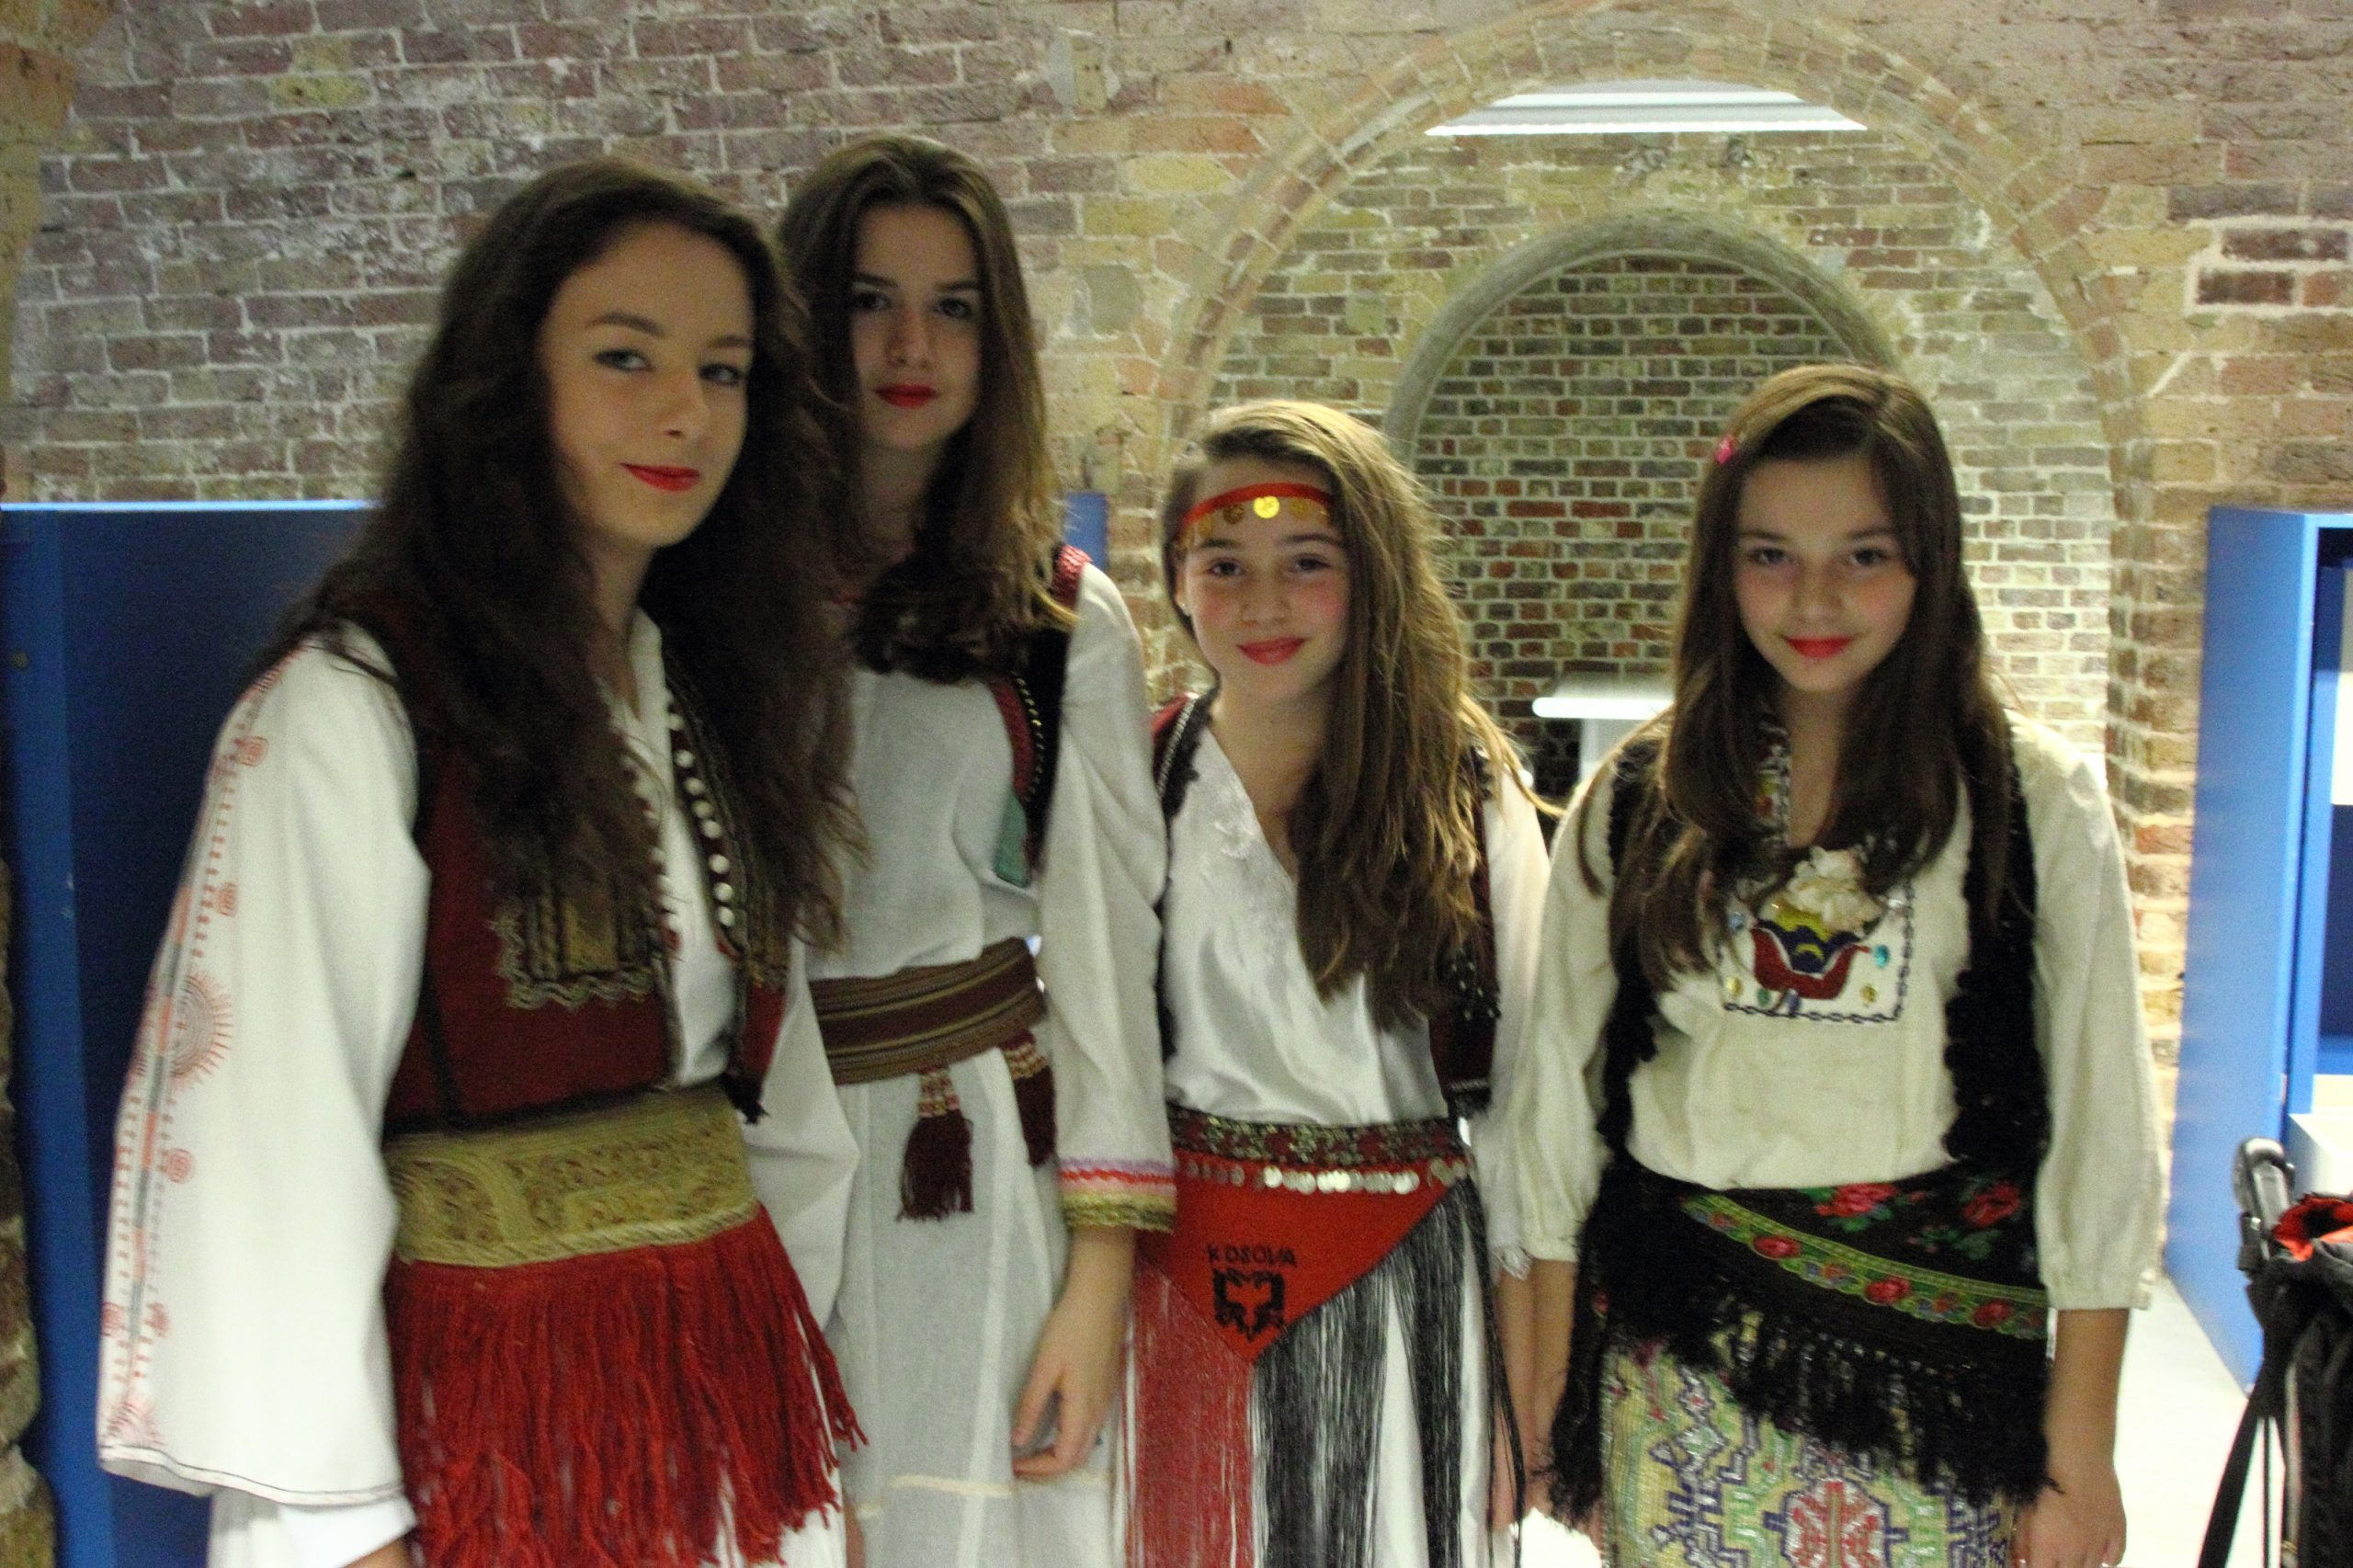 Albanian traditional costumes at the British museum, London photographer